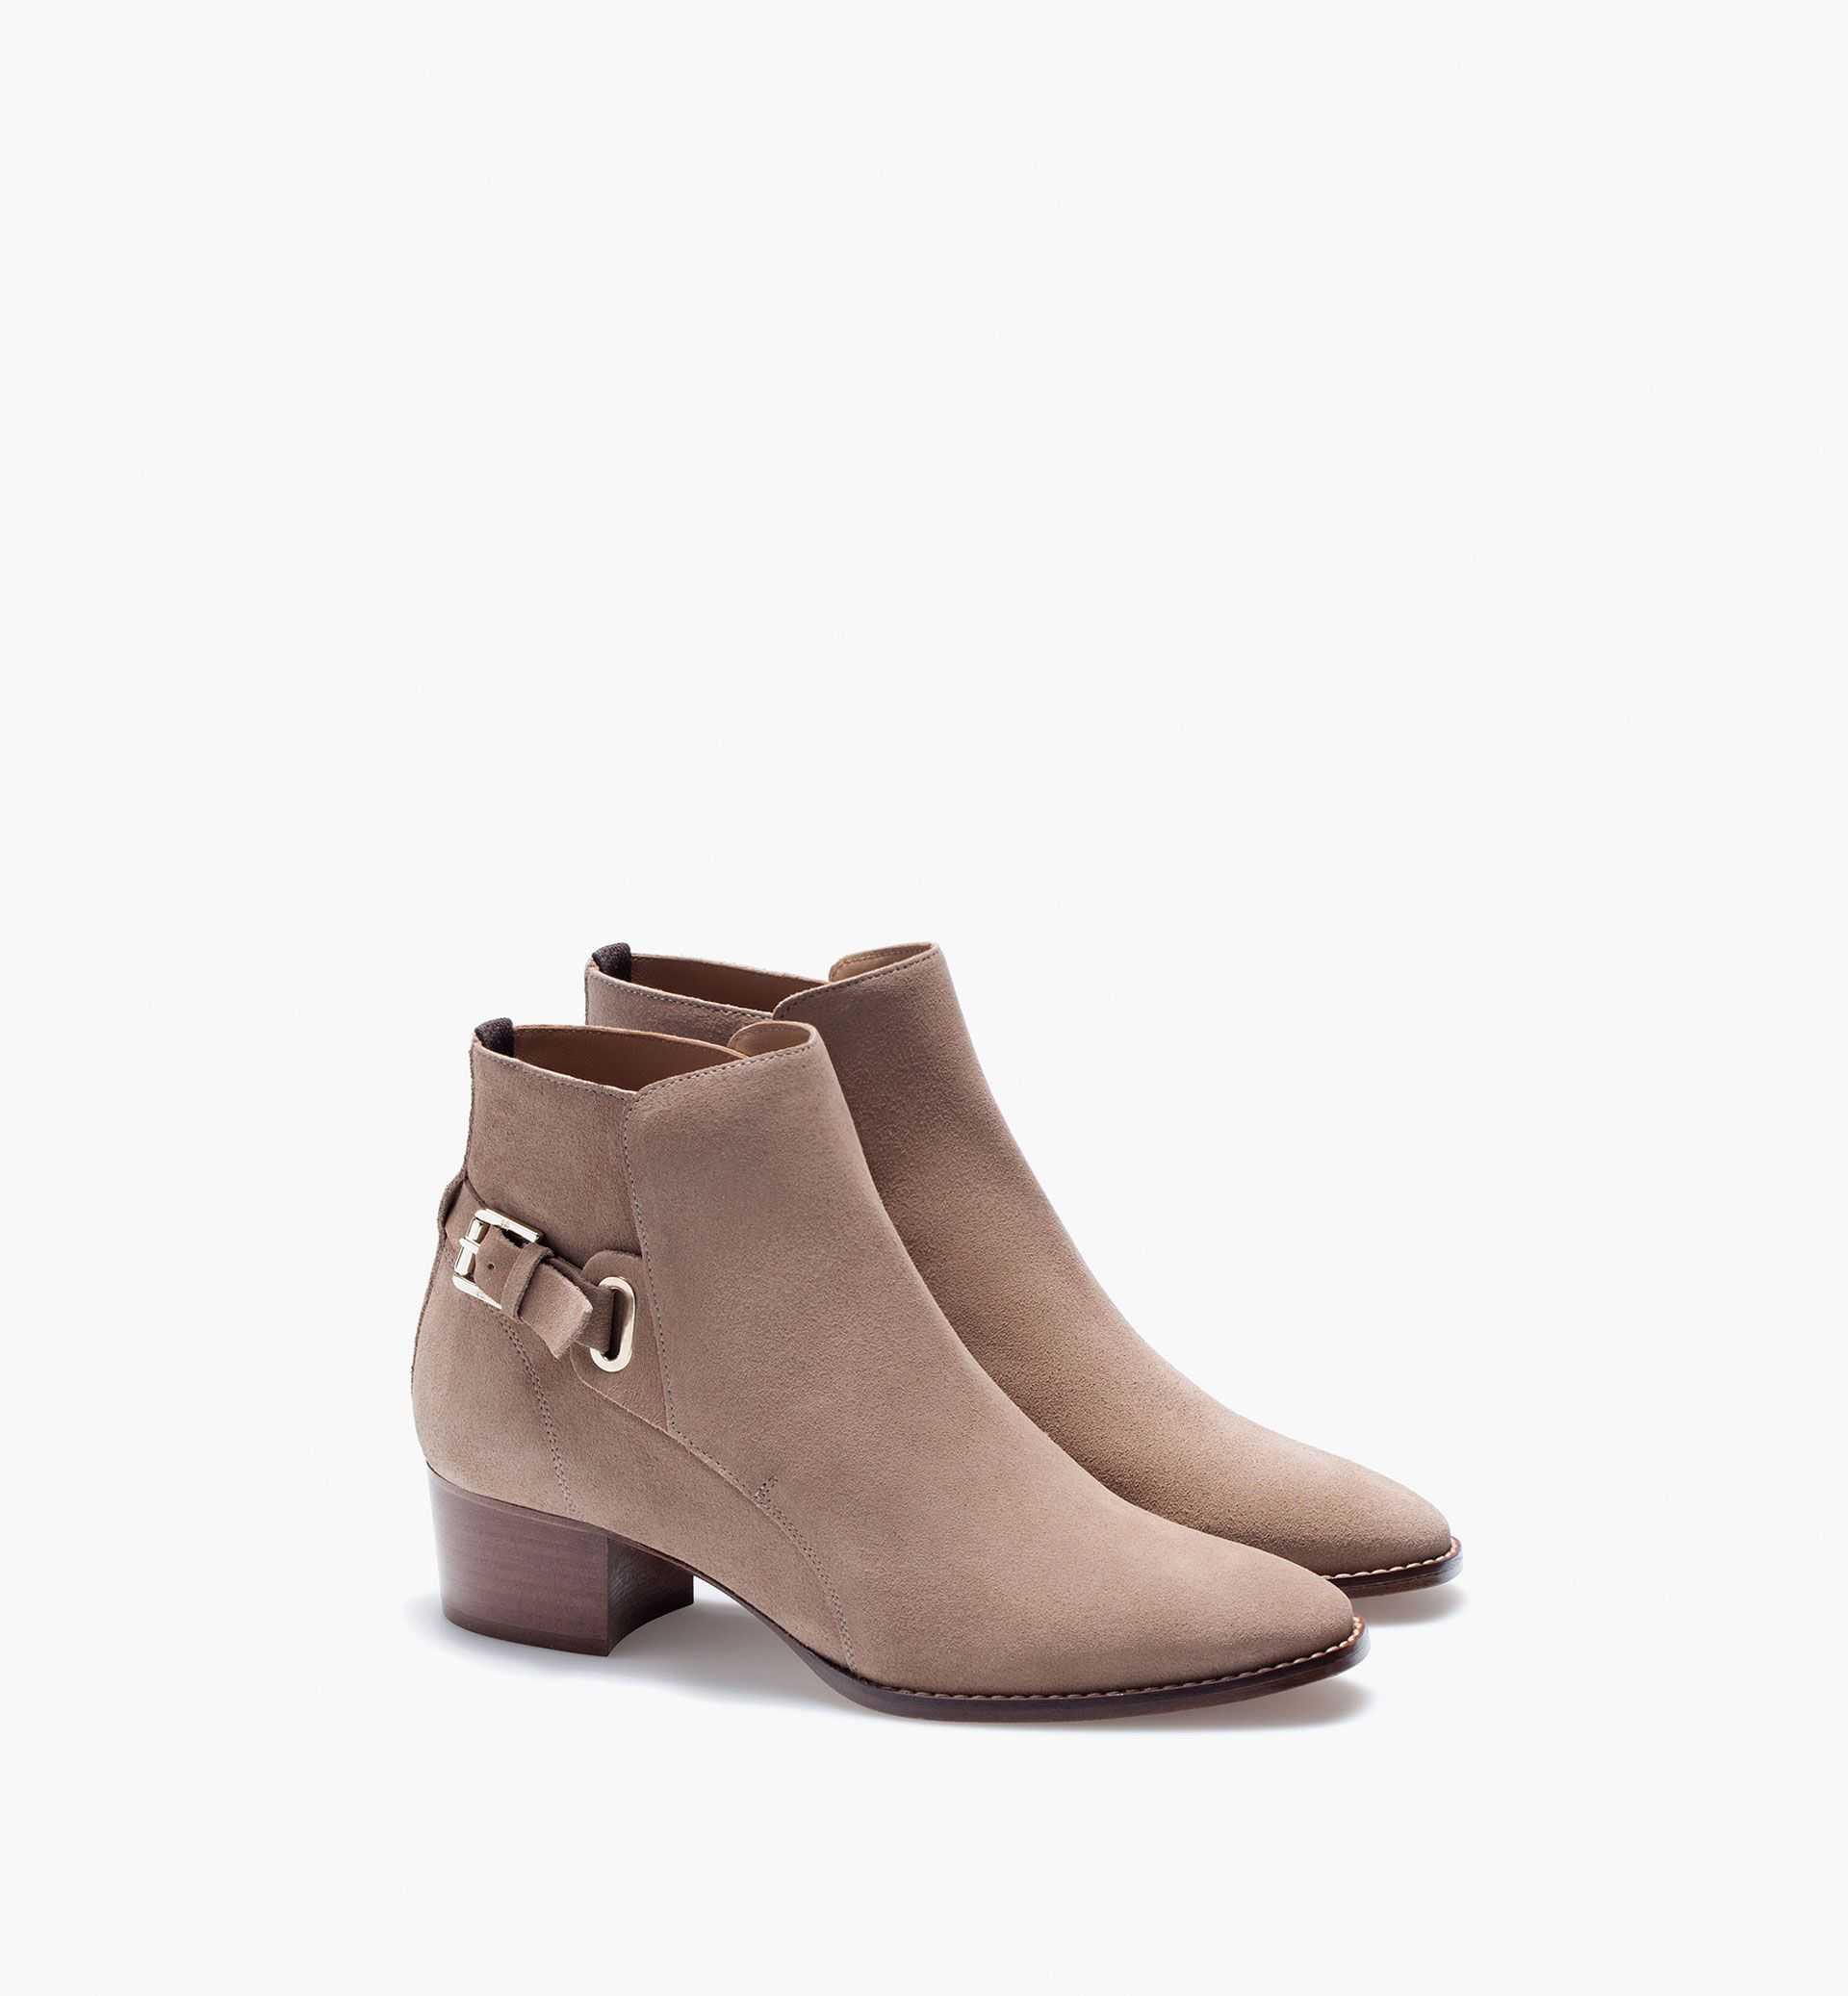 Online Sale 2017 Spring New Style Women'Tan Ankle boots